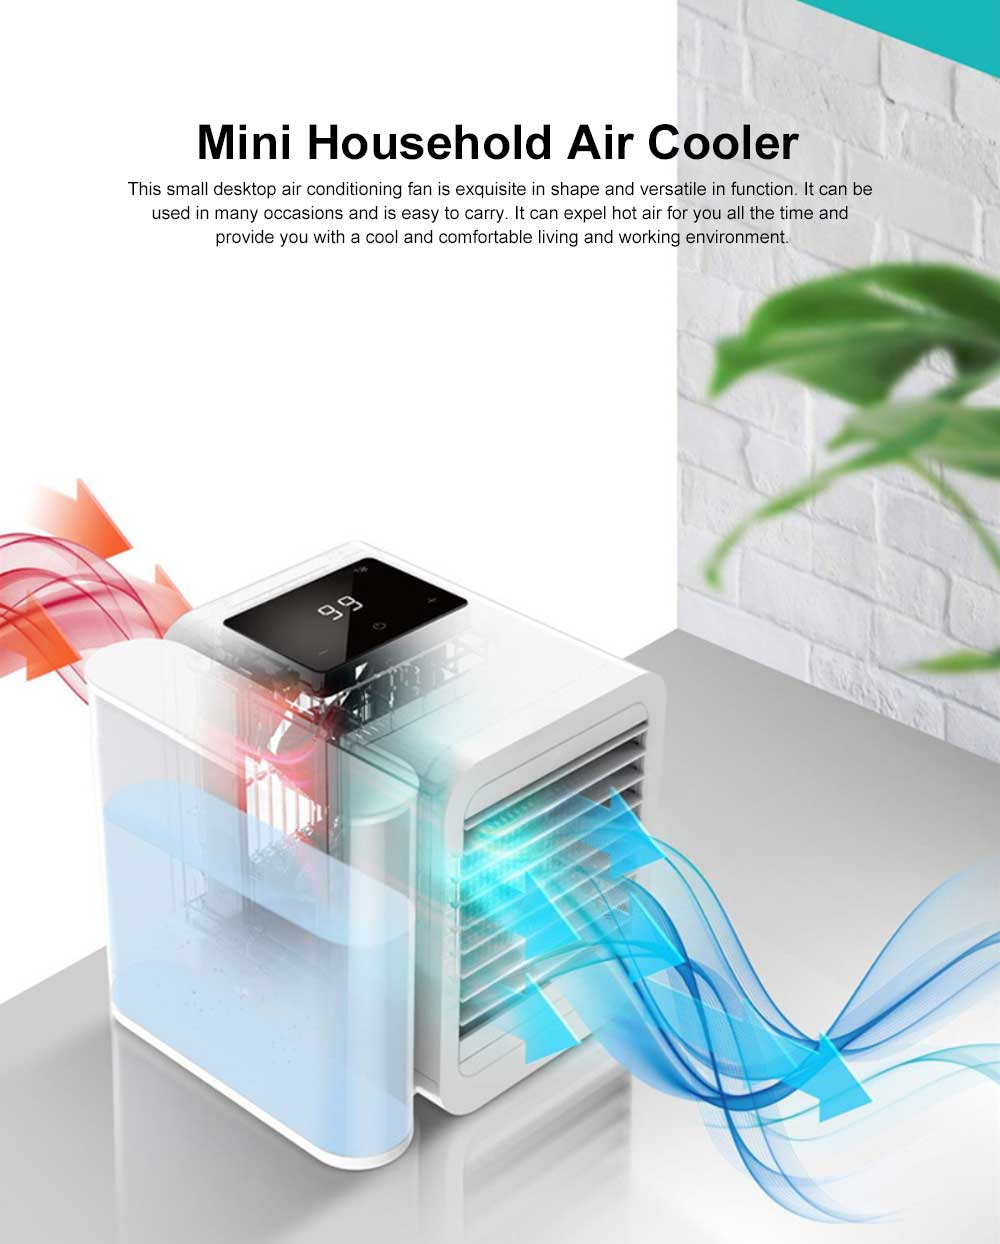 Tinkleo Small Household Desktop Air-cooler Fan Portable Three-in-one Mini Air Cooler Conditioning Fan 99 Wind Gear 1 Liter Water Tank Cool To 13 Degrees 0